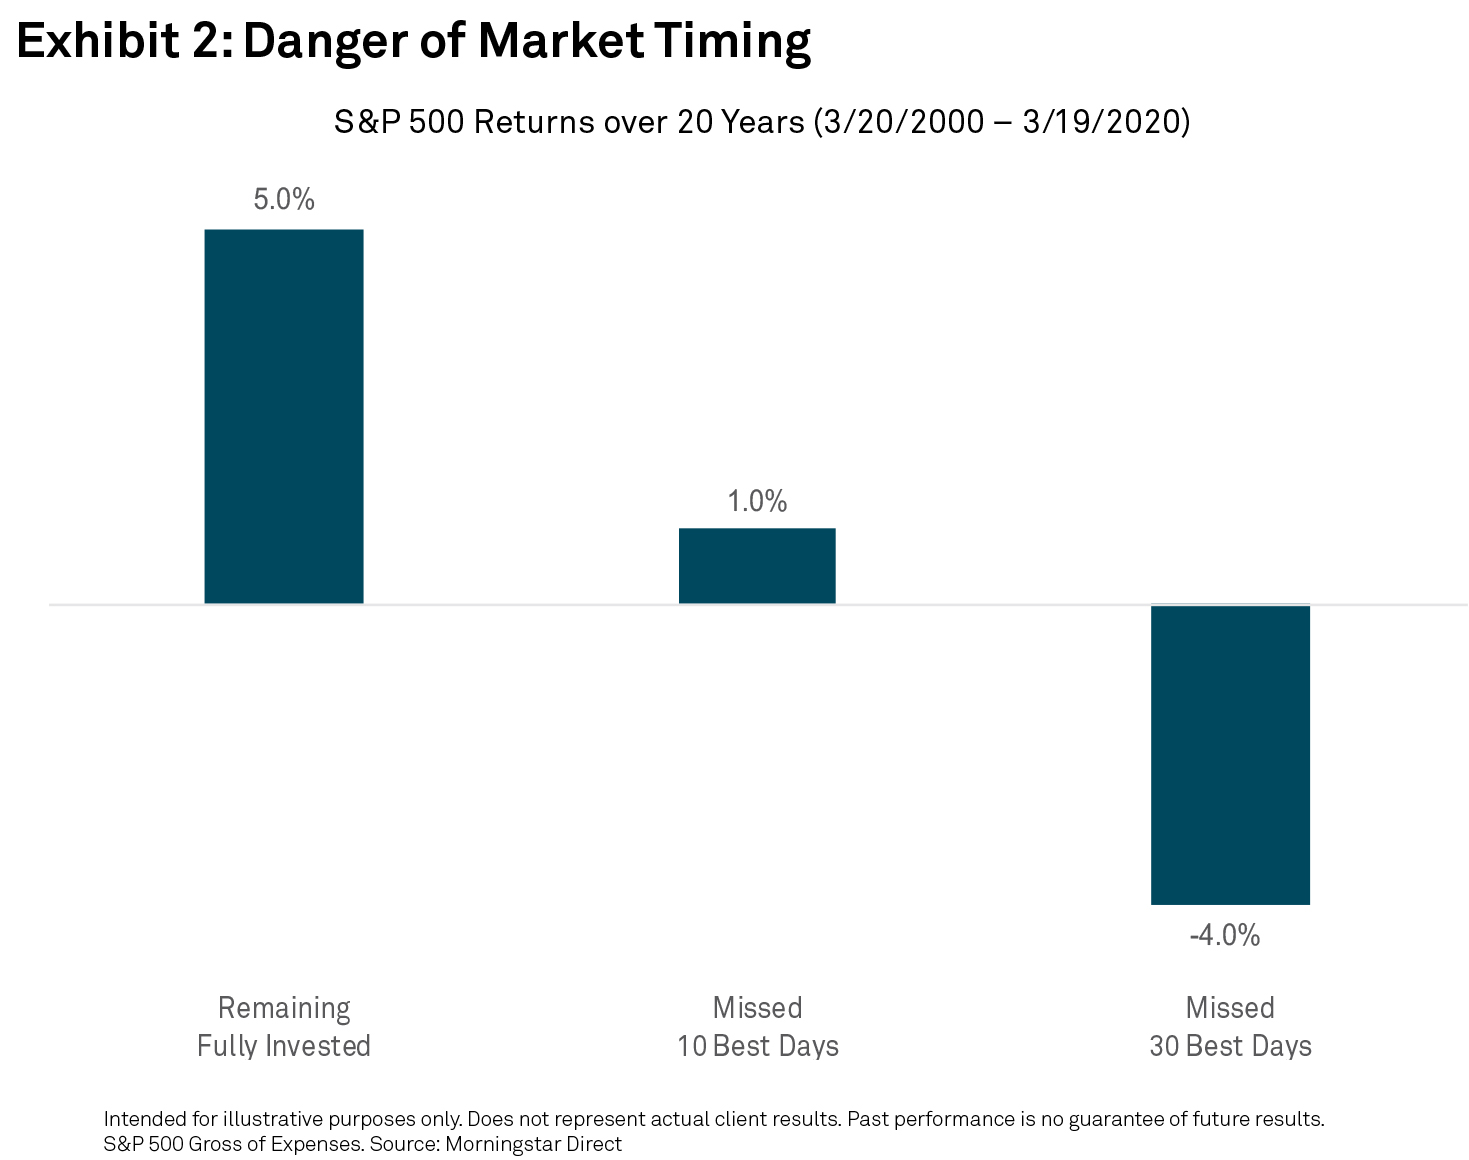 Danger of Market Timing